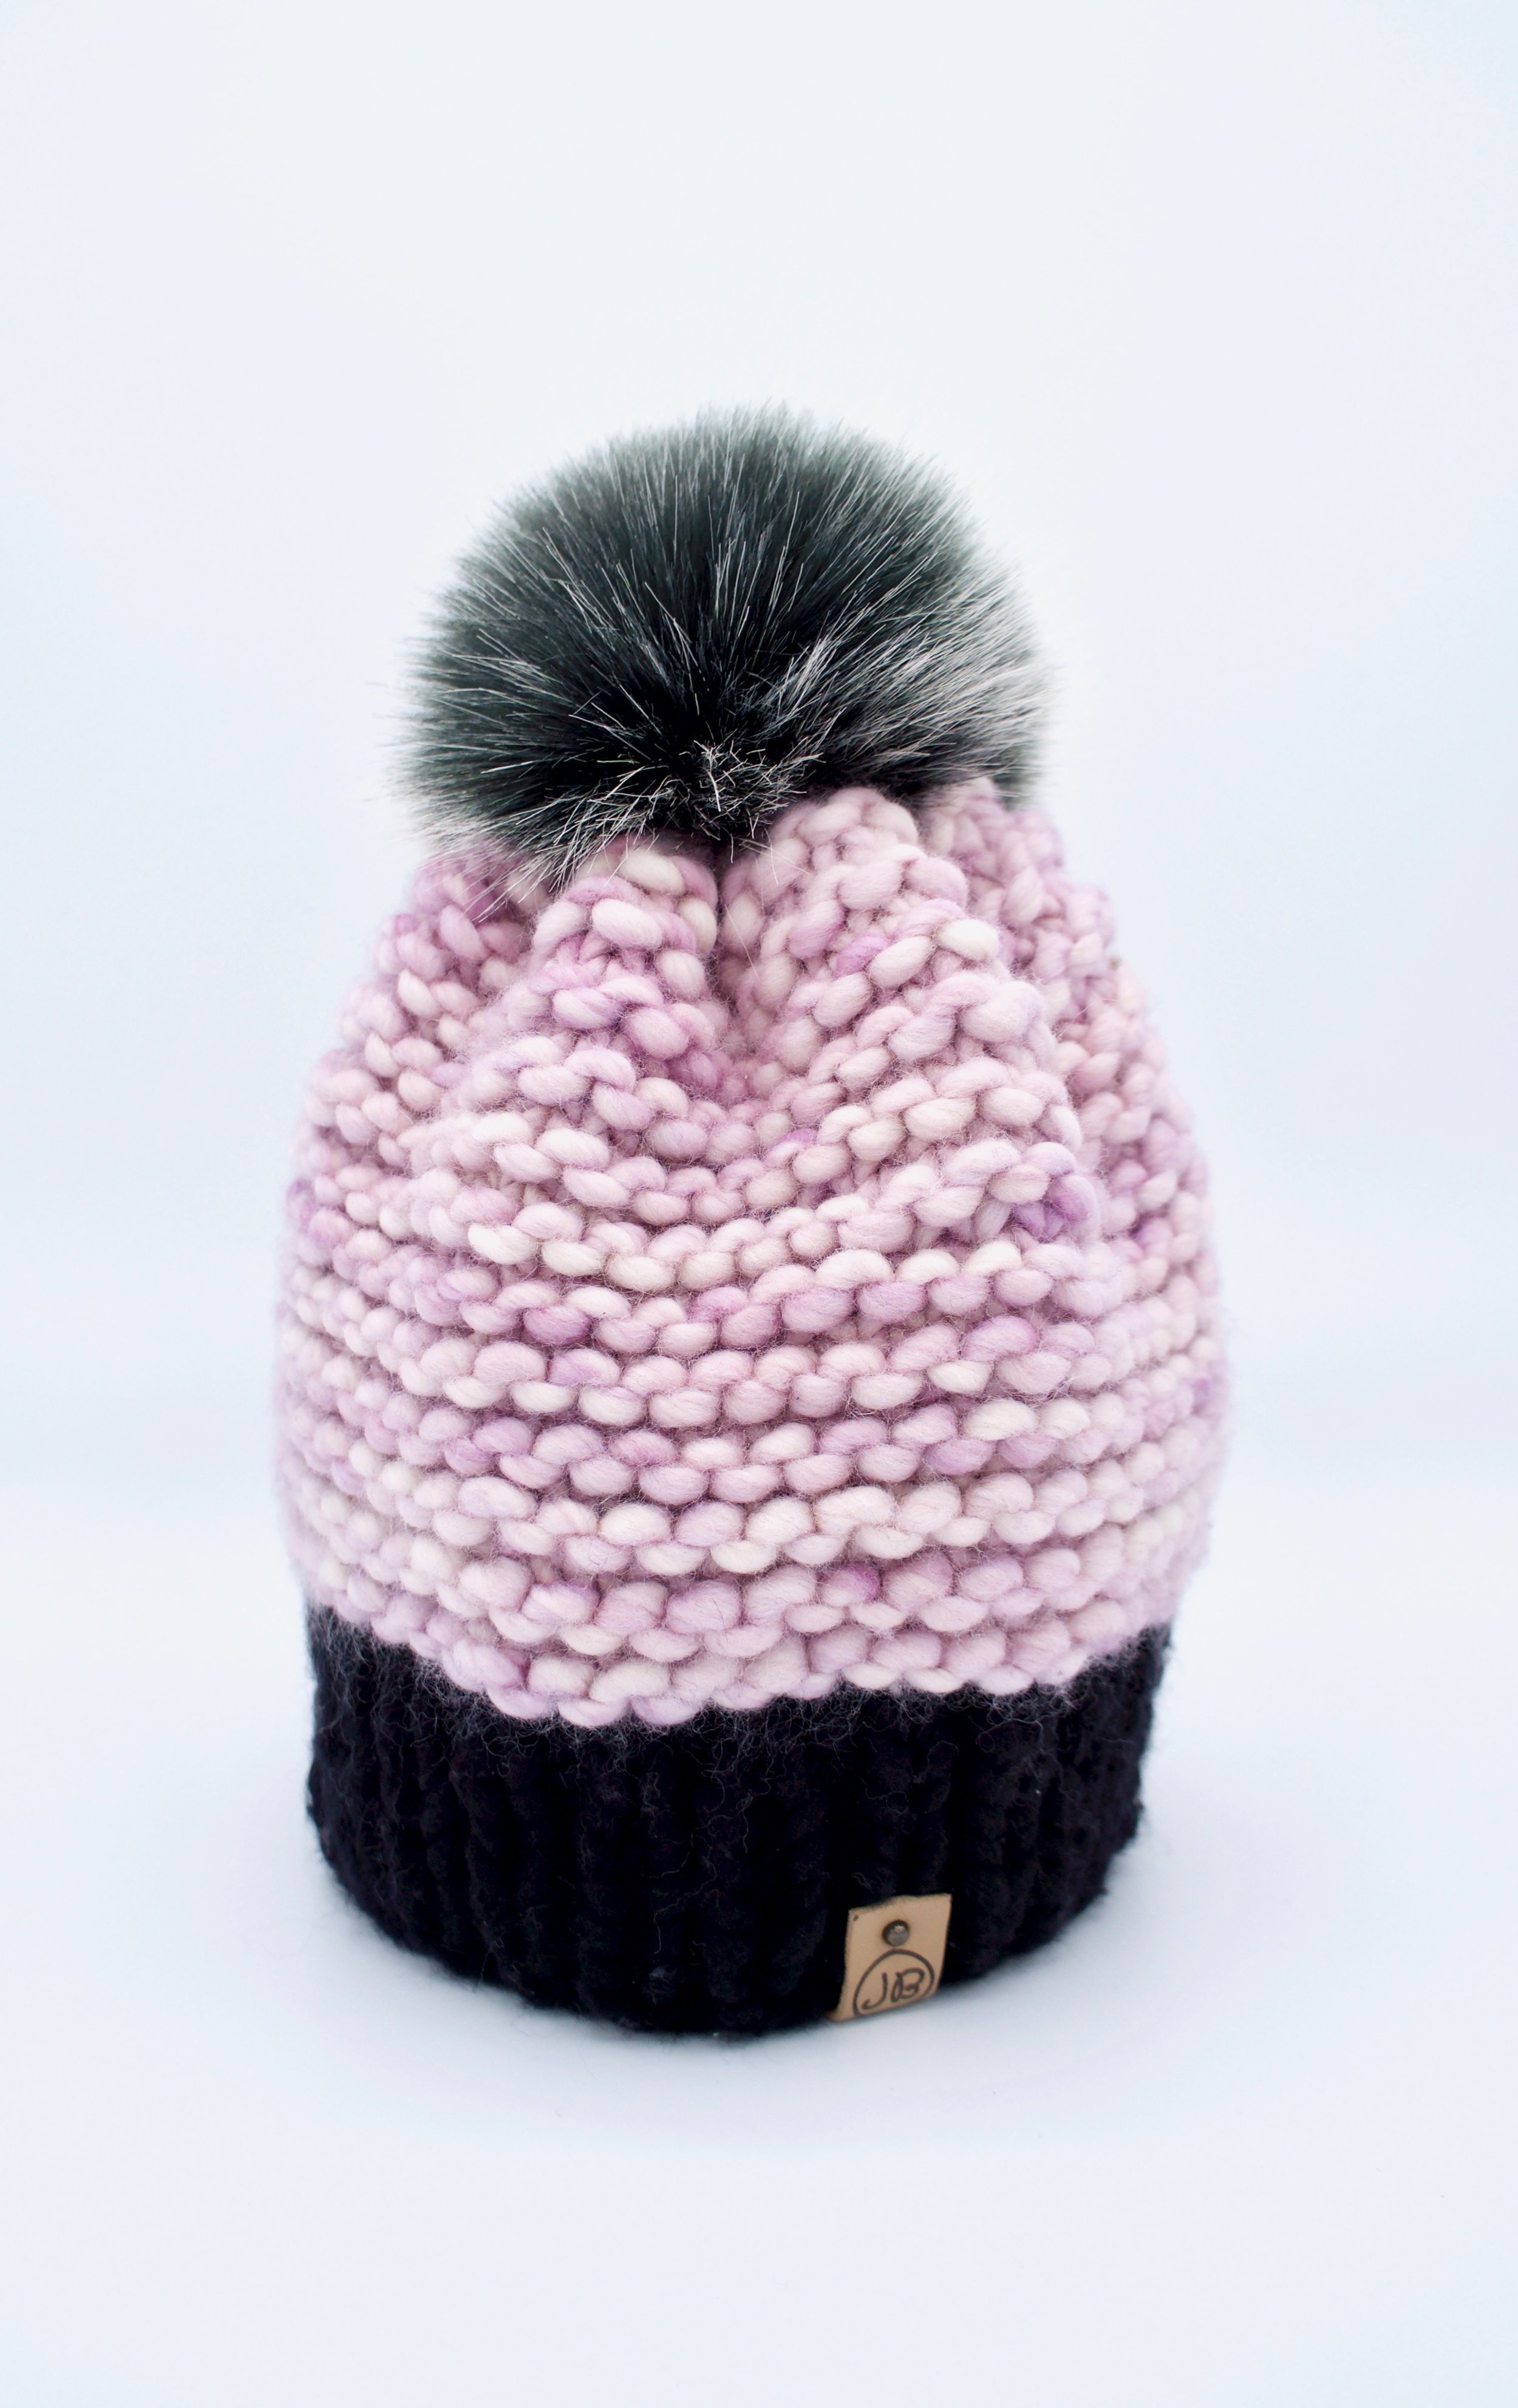 Beanie Hat with Detachable Pompom Black & Baby Pink $115.00